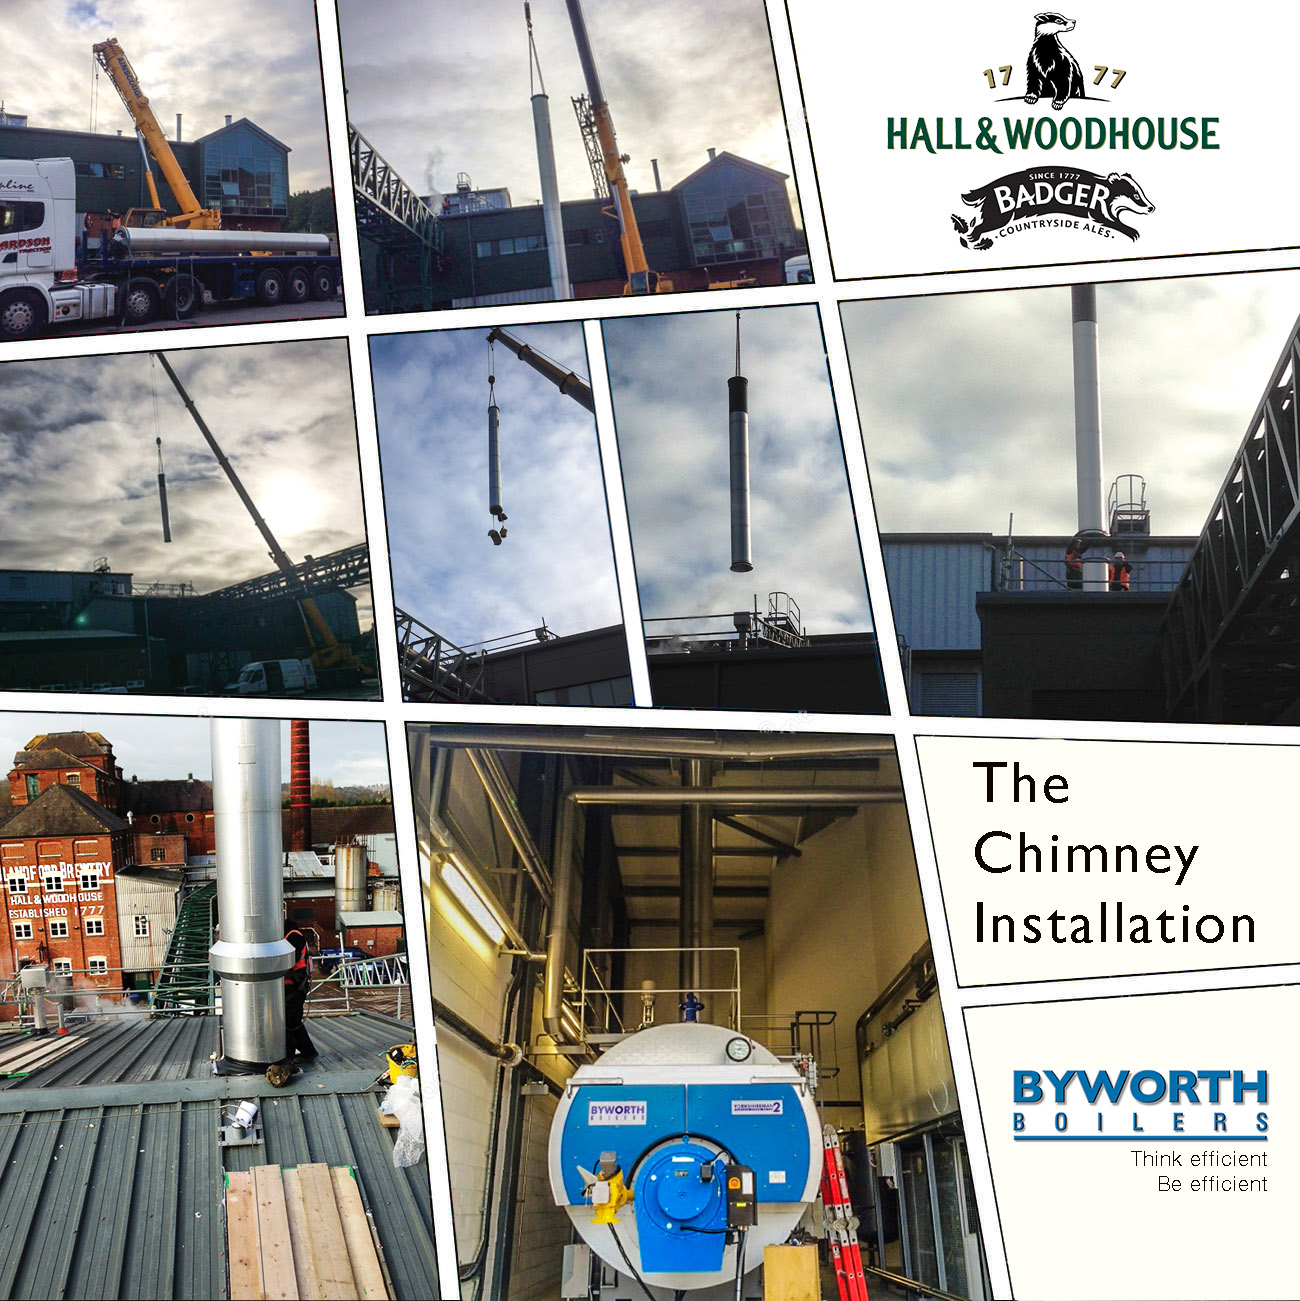 Chimney installation - one part of the installation works carried out by Byworth at Hall and Woodhouse brewery